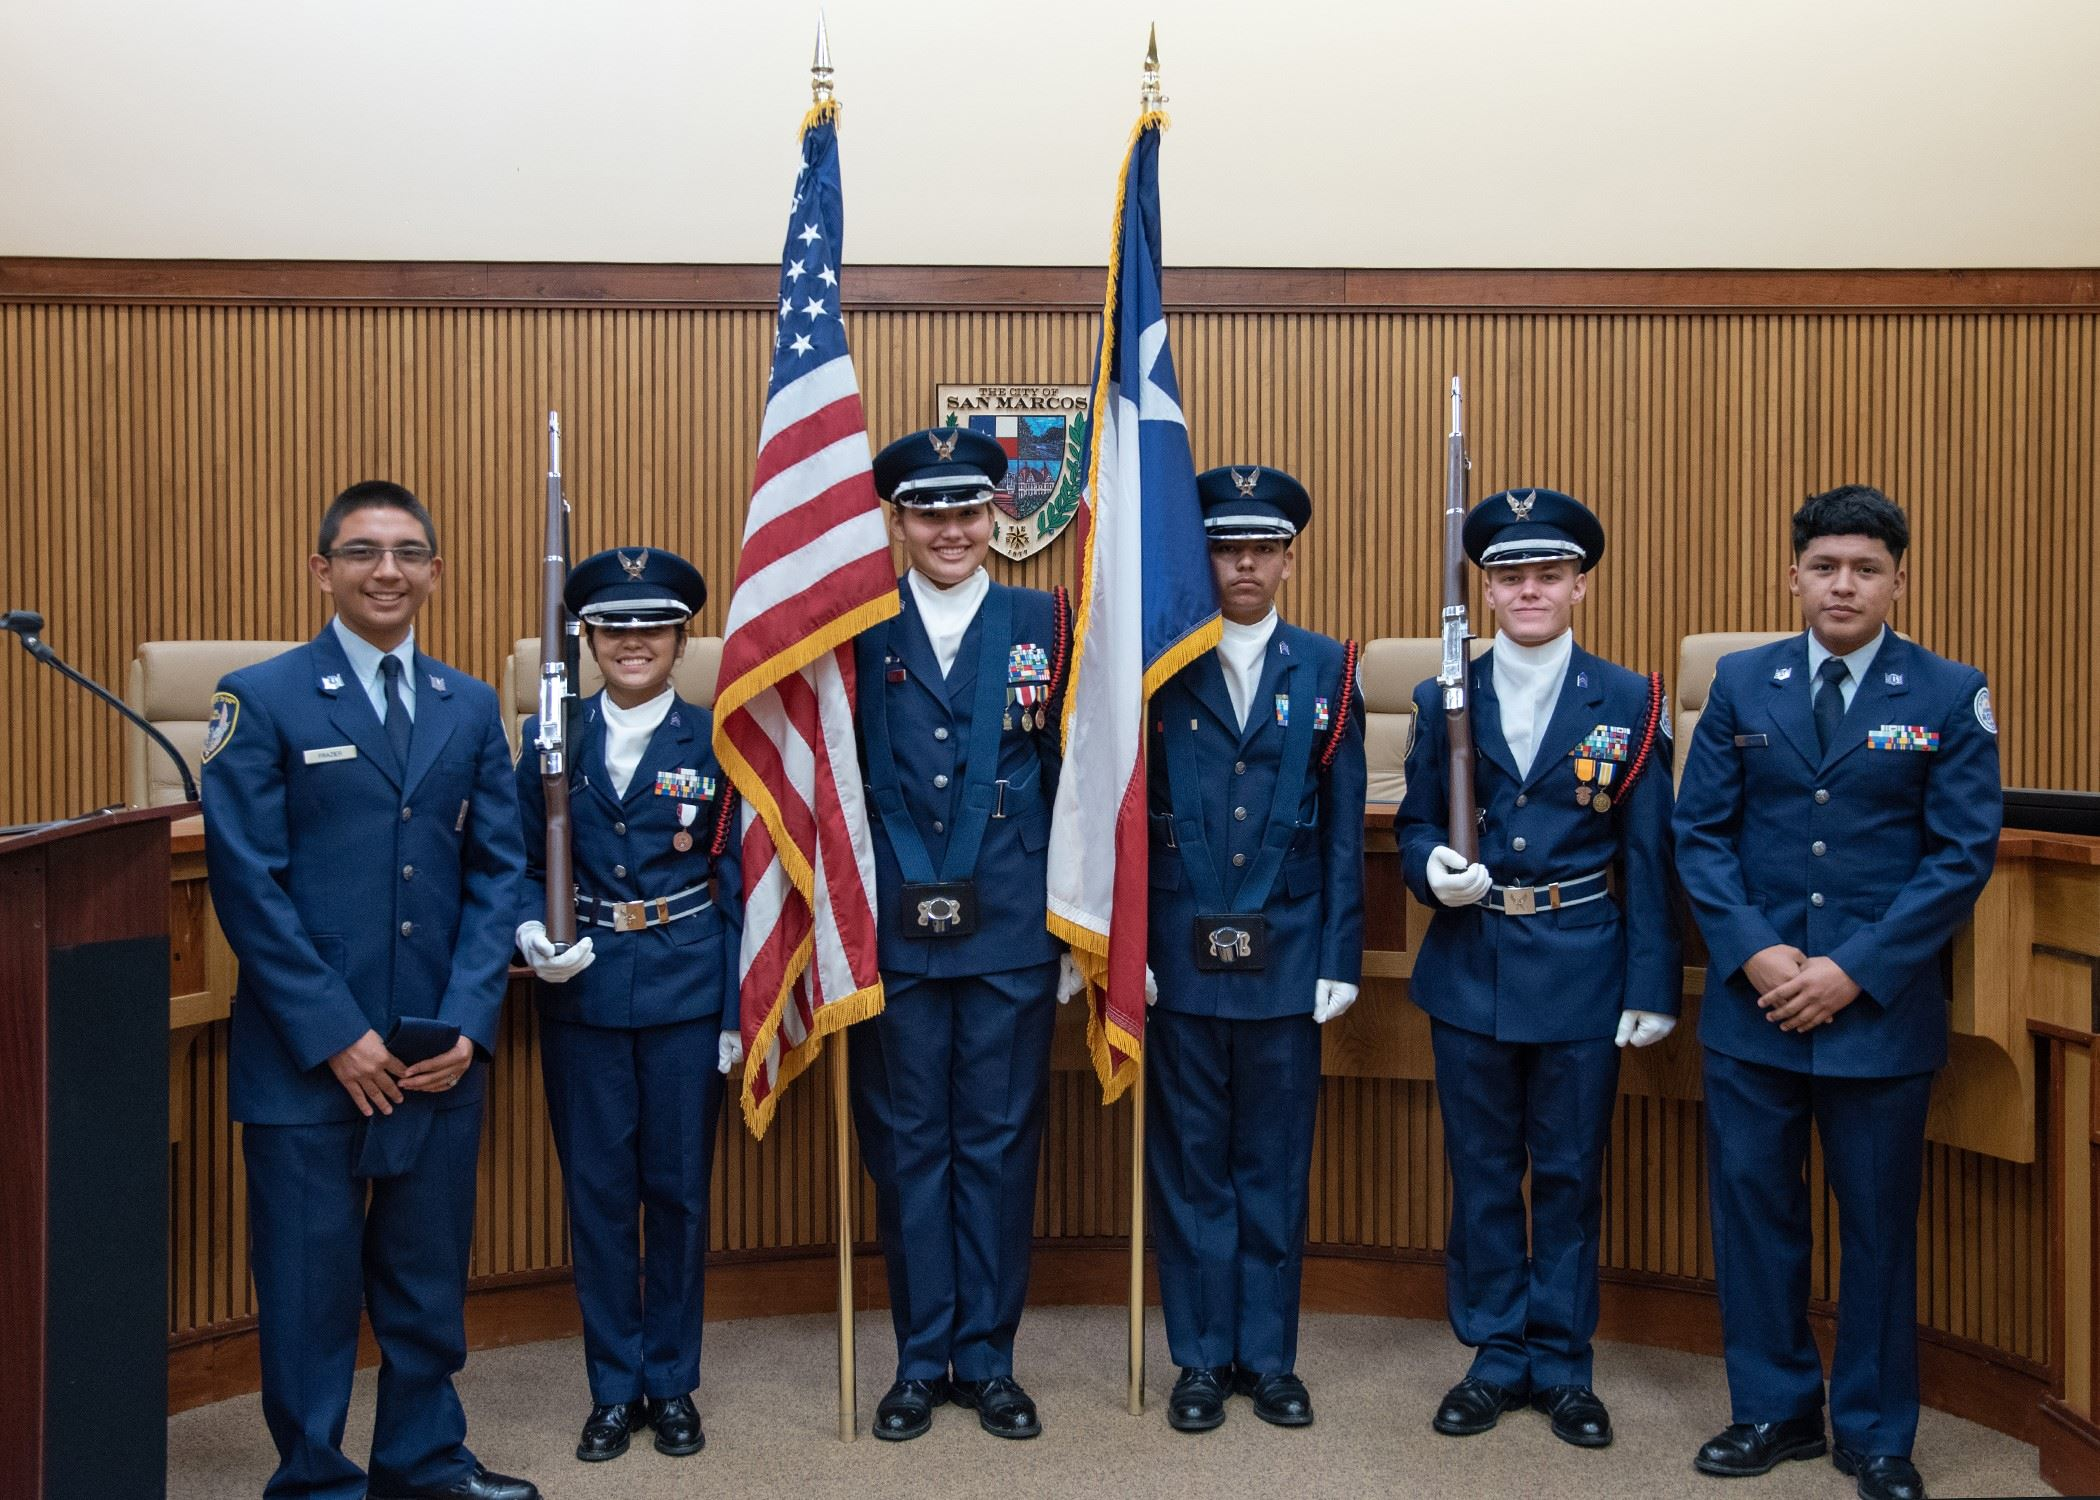 JR ROTC Color Guard